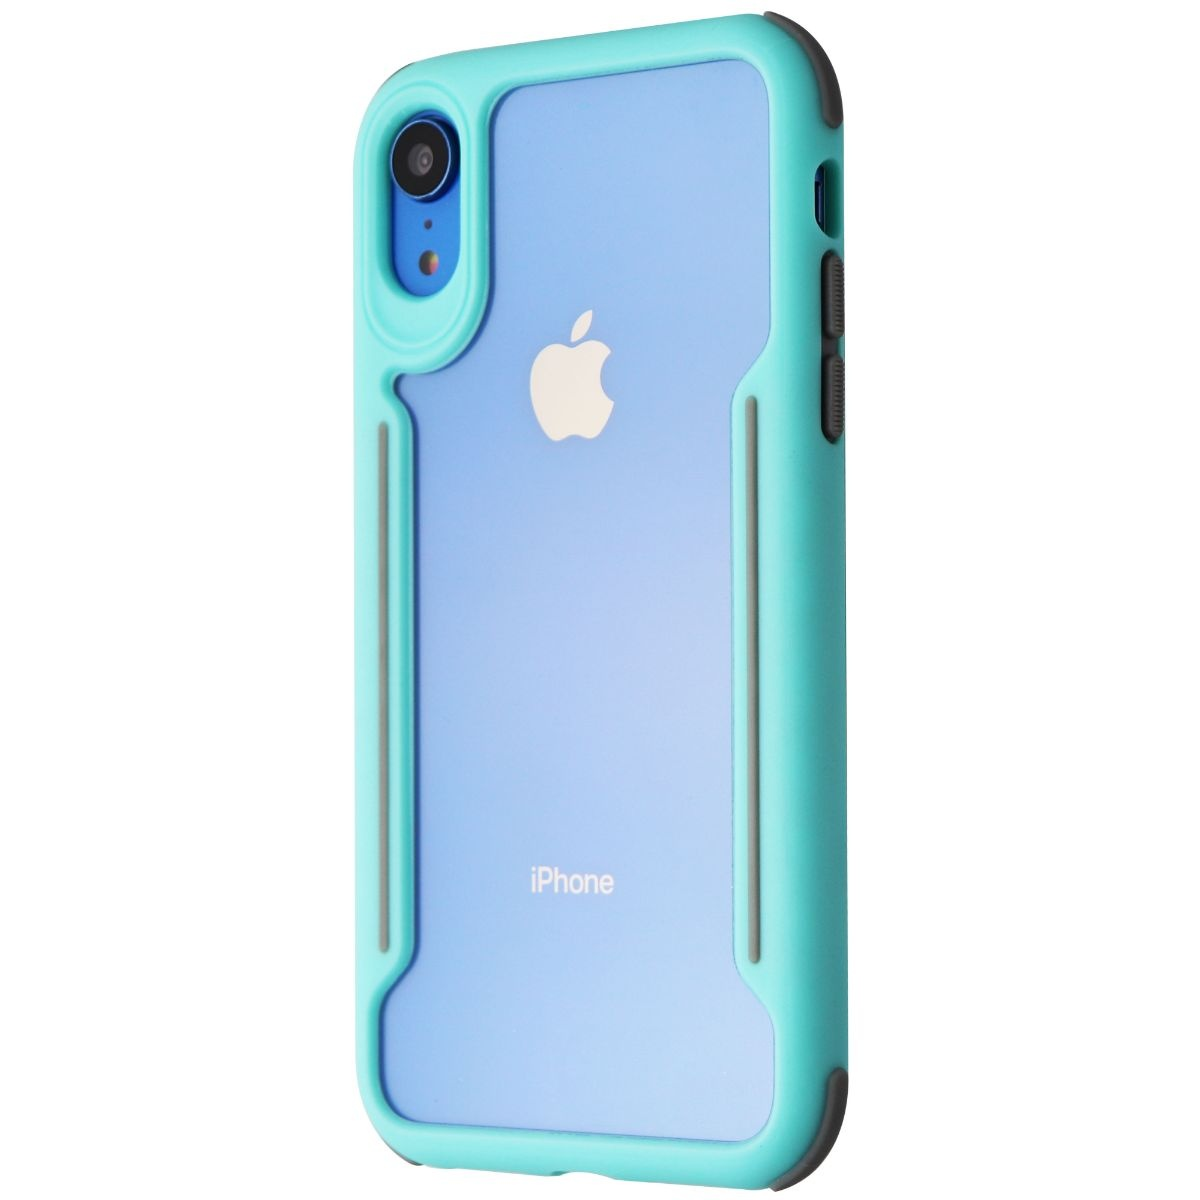 Verizon Slim Guard Series Case for Apple iPhone XR - Clear/Teal/Gray